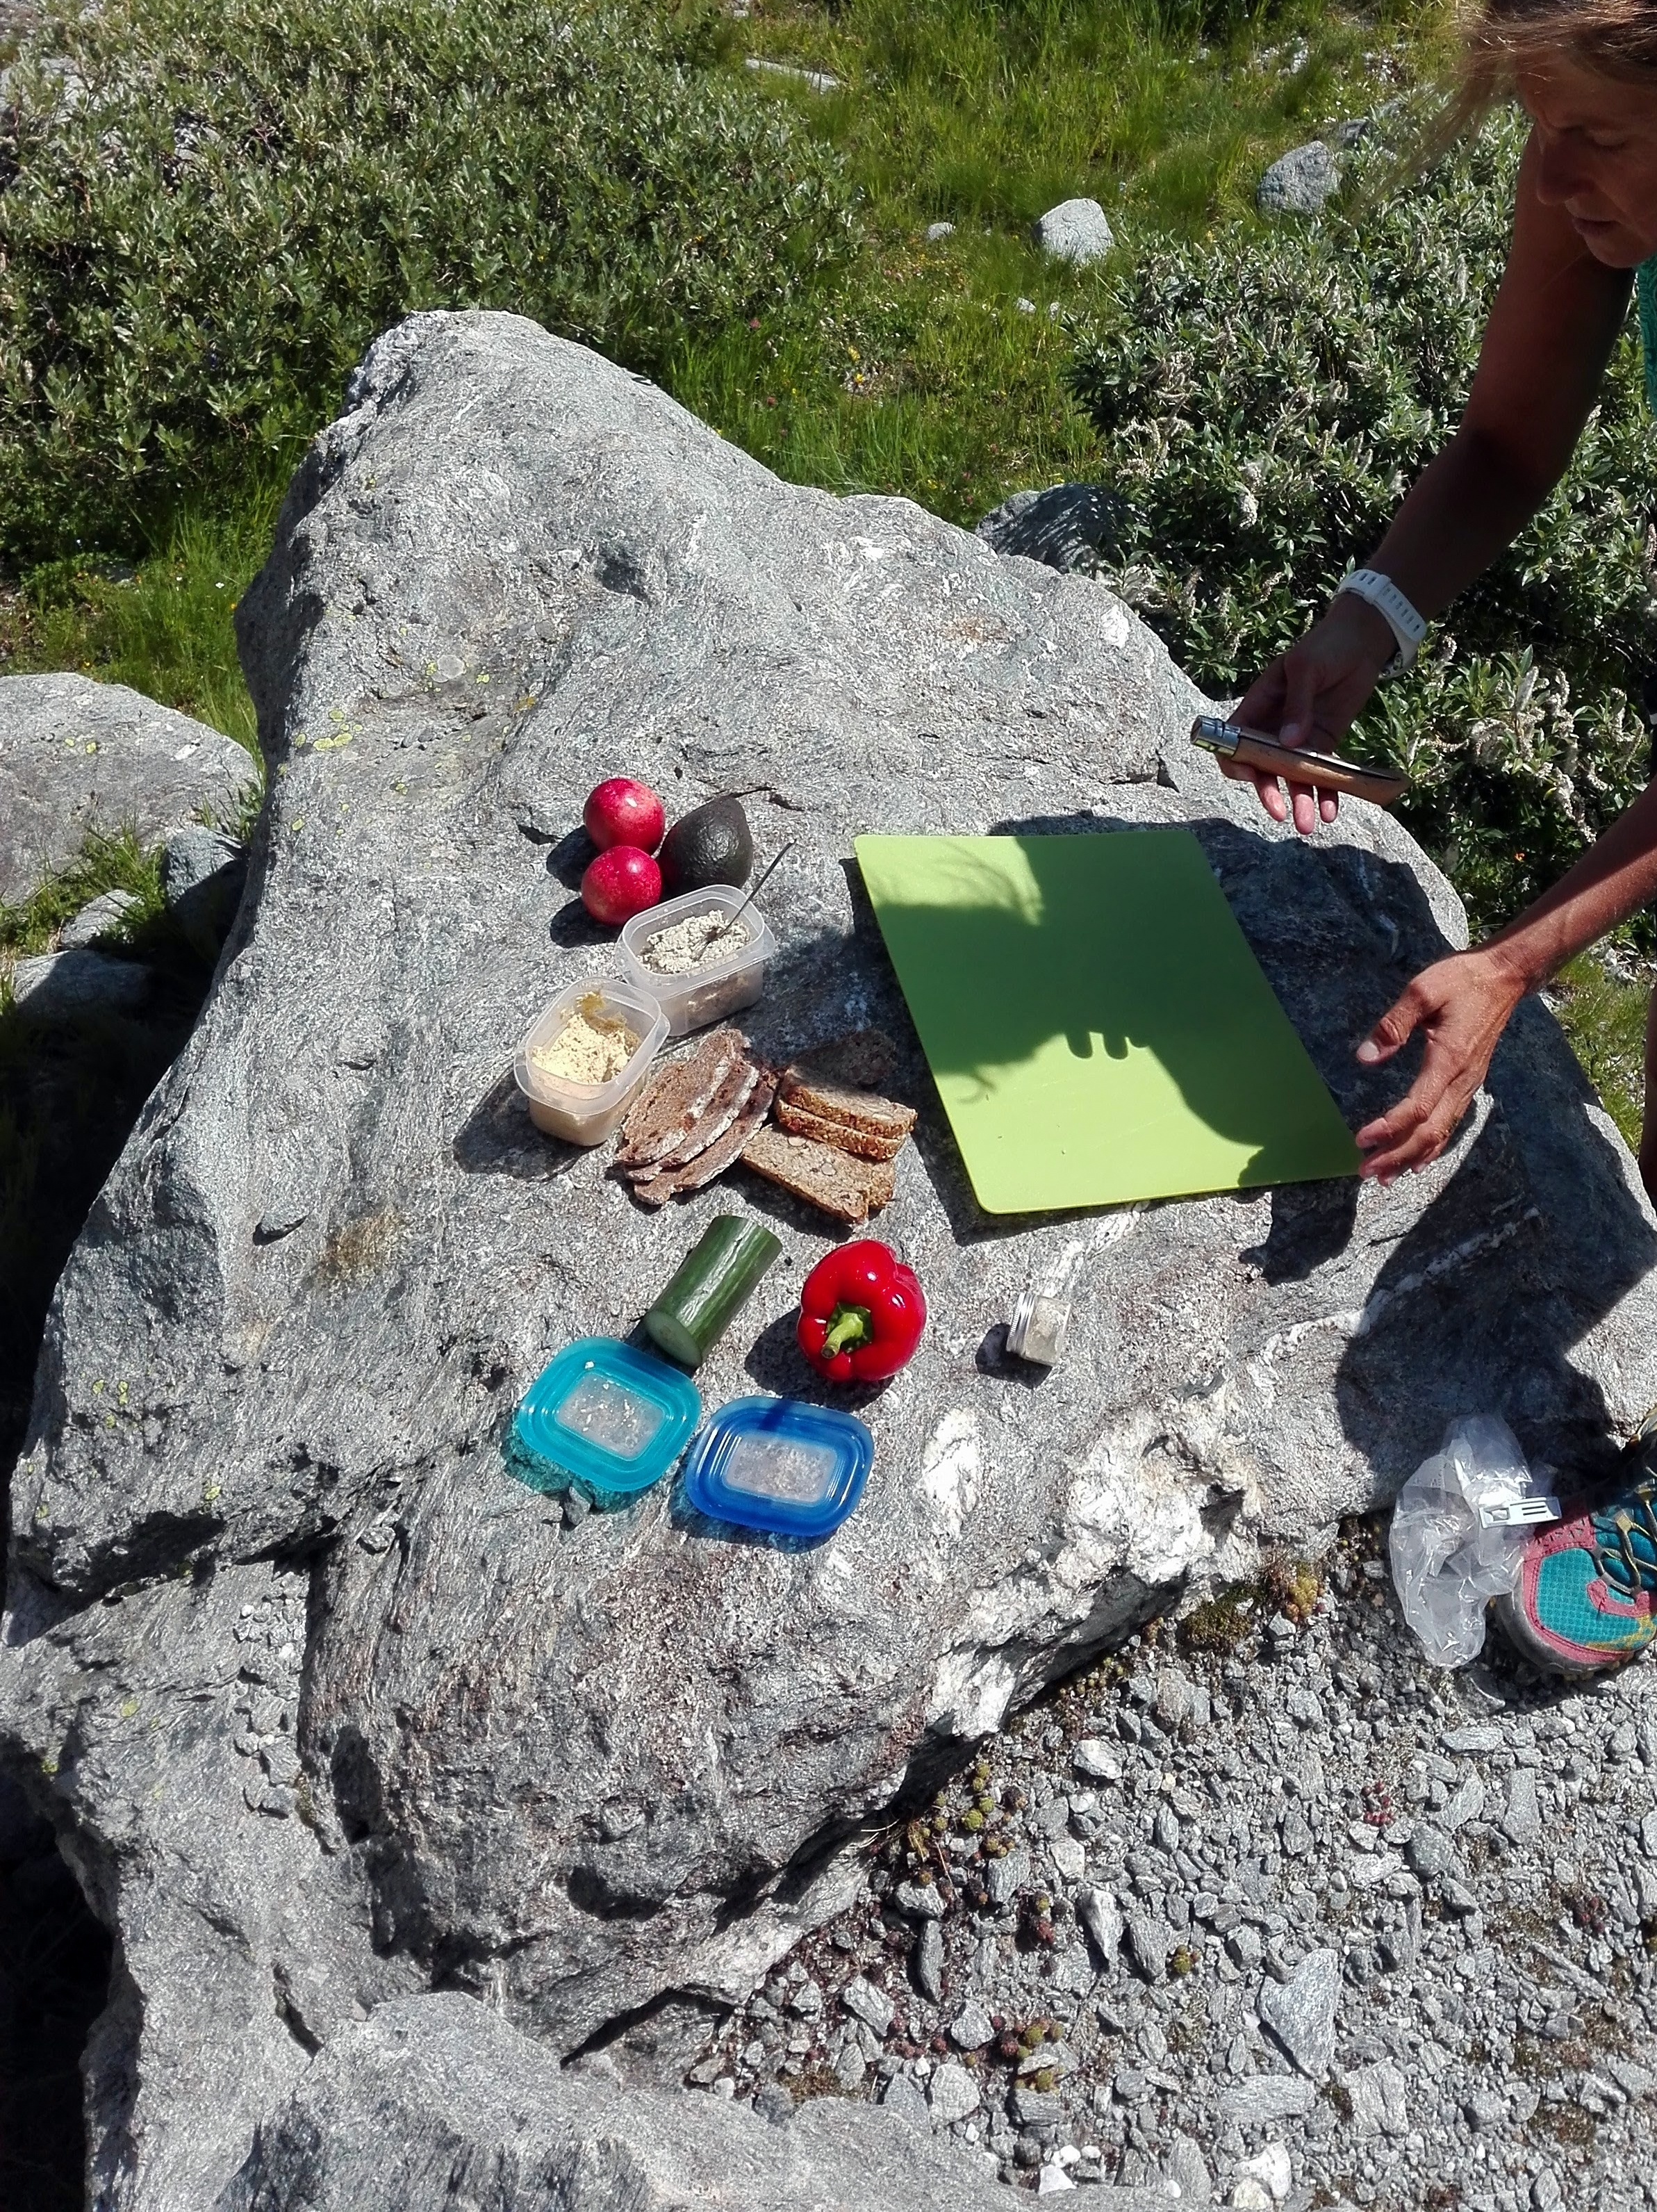 Picnic in the Swiss Alps